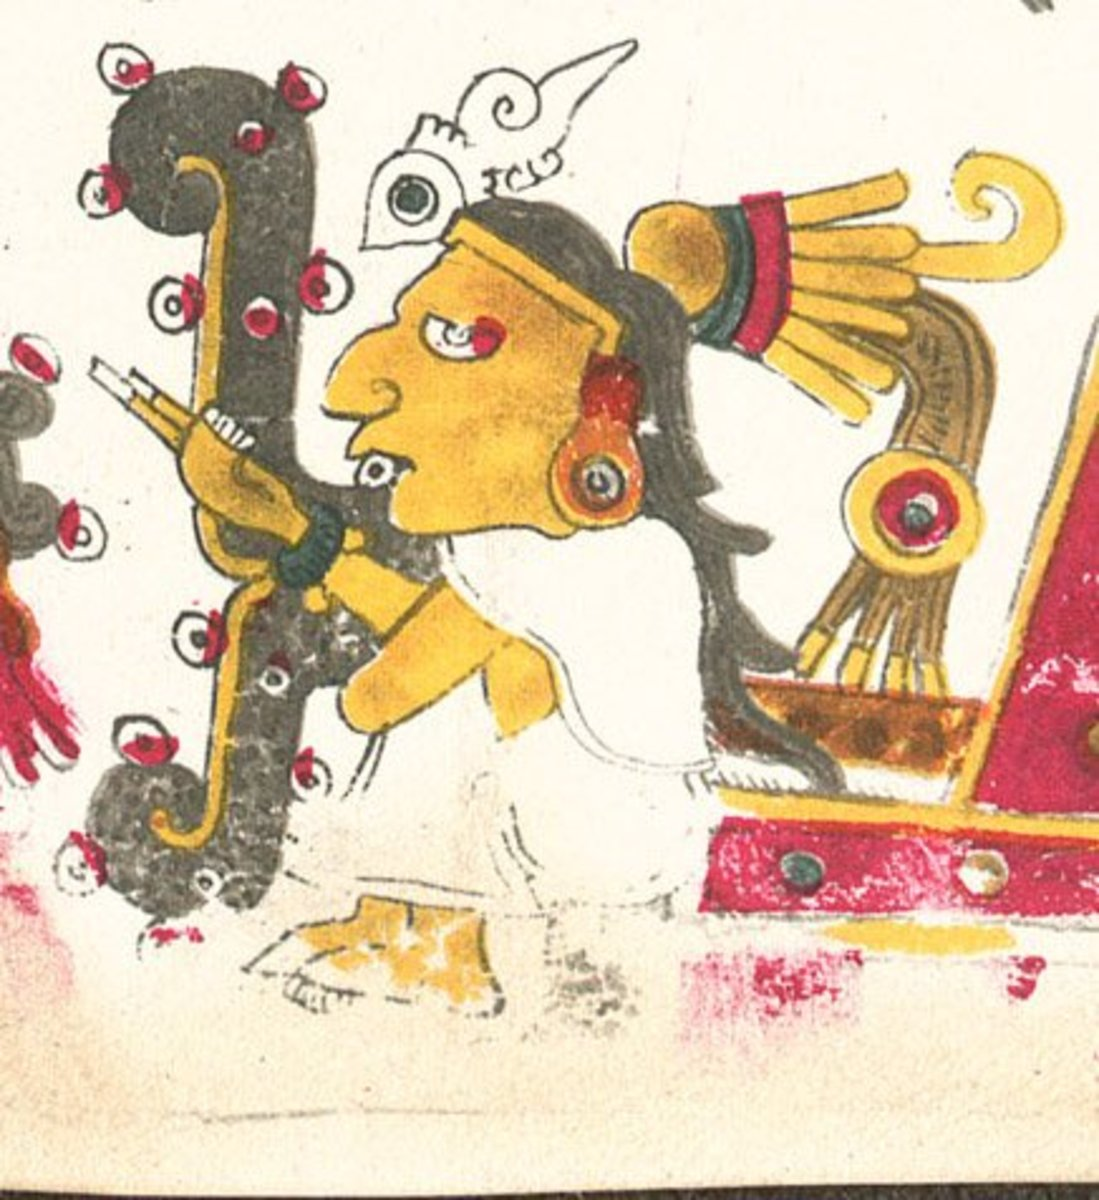 A drawing of Tecciztecatl from the Codex Borgia, an ancient Mesoamerican manuscript.